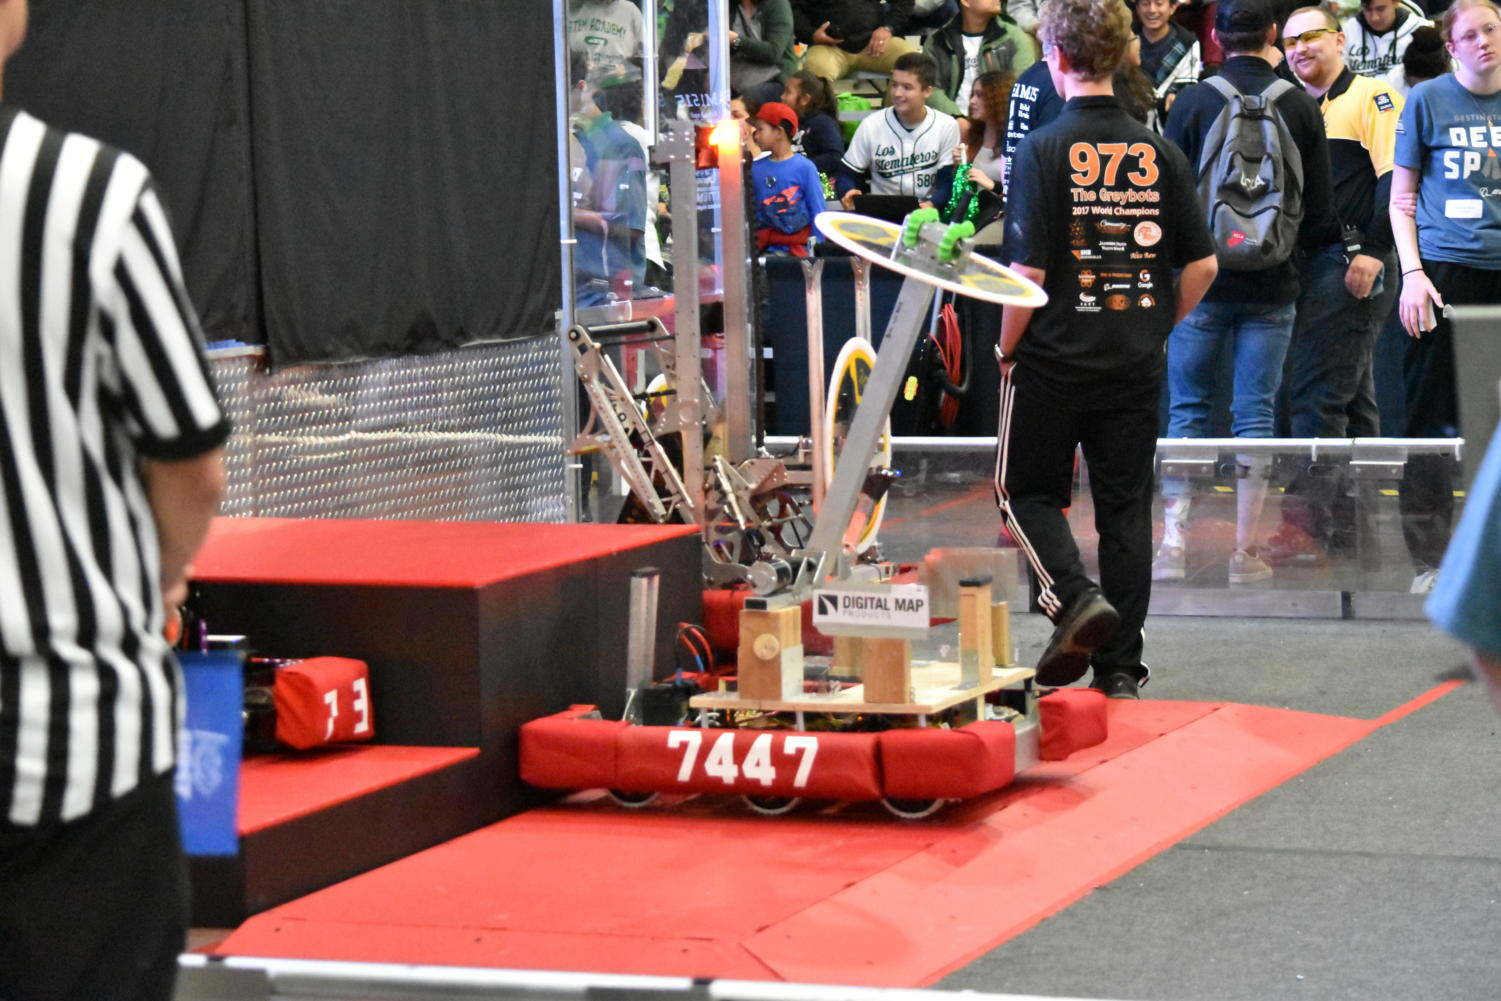 At the Orange County Regionals, the FIRST Robotics team won sixth place after its award-winning robot demonstrated several skills the judges were looking for.